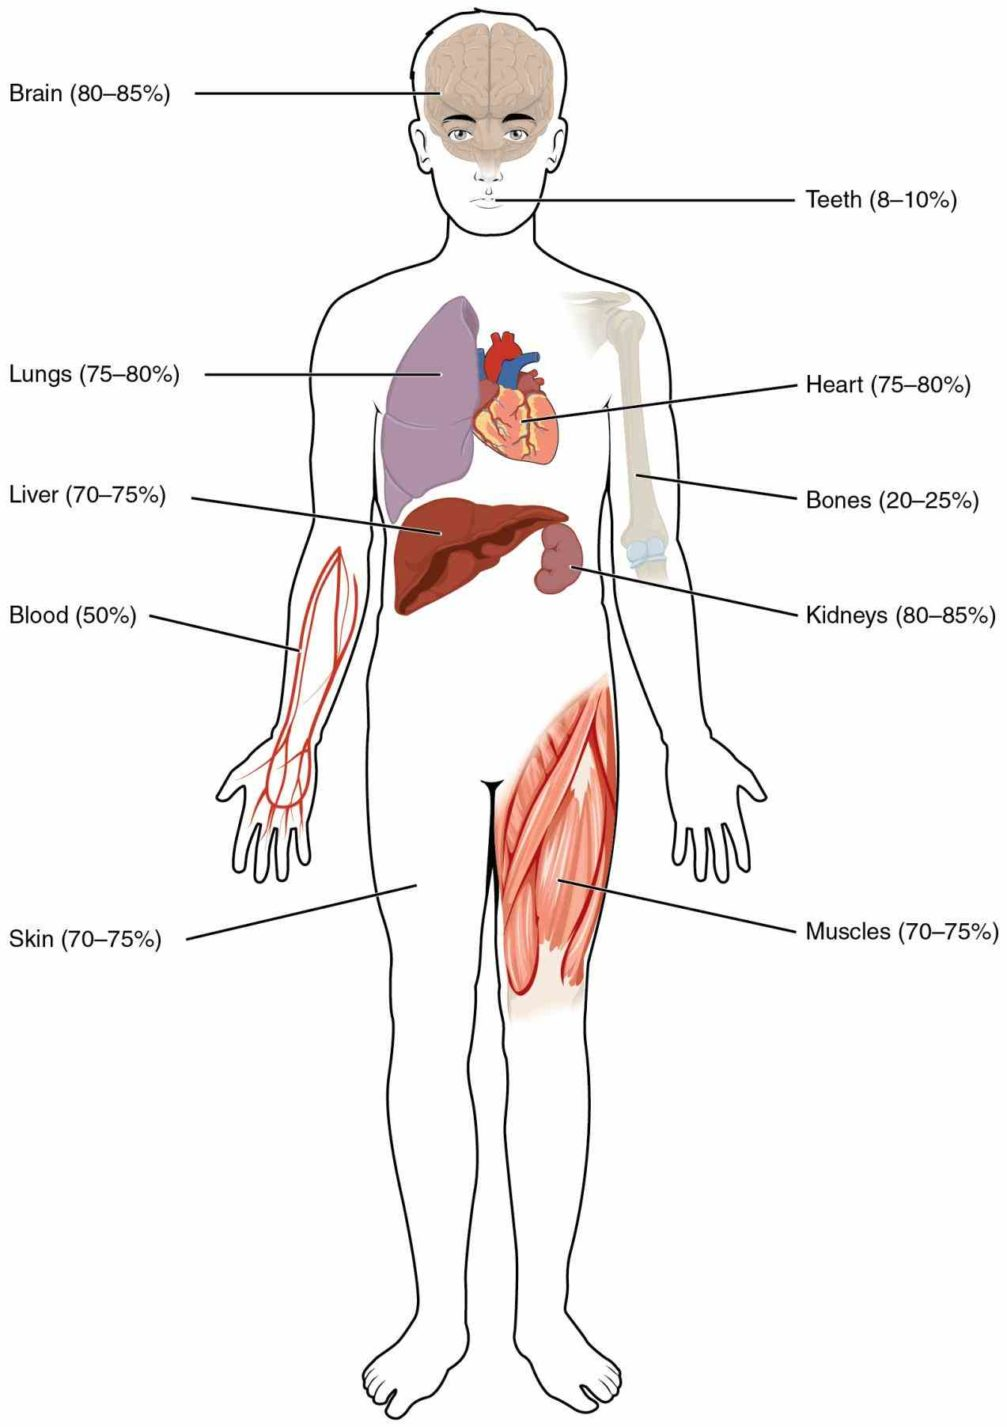 Bodythe Brain Different Parts Our Controldifferent Body We De Major Organs Of The Body And Their Functions Ago Top X on Store Er Diagram Examples